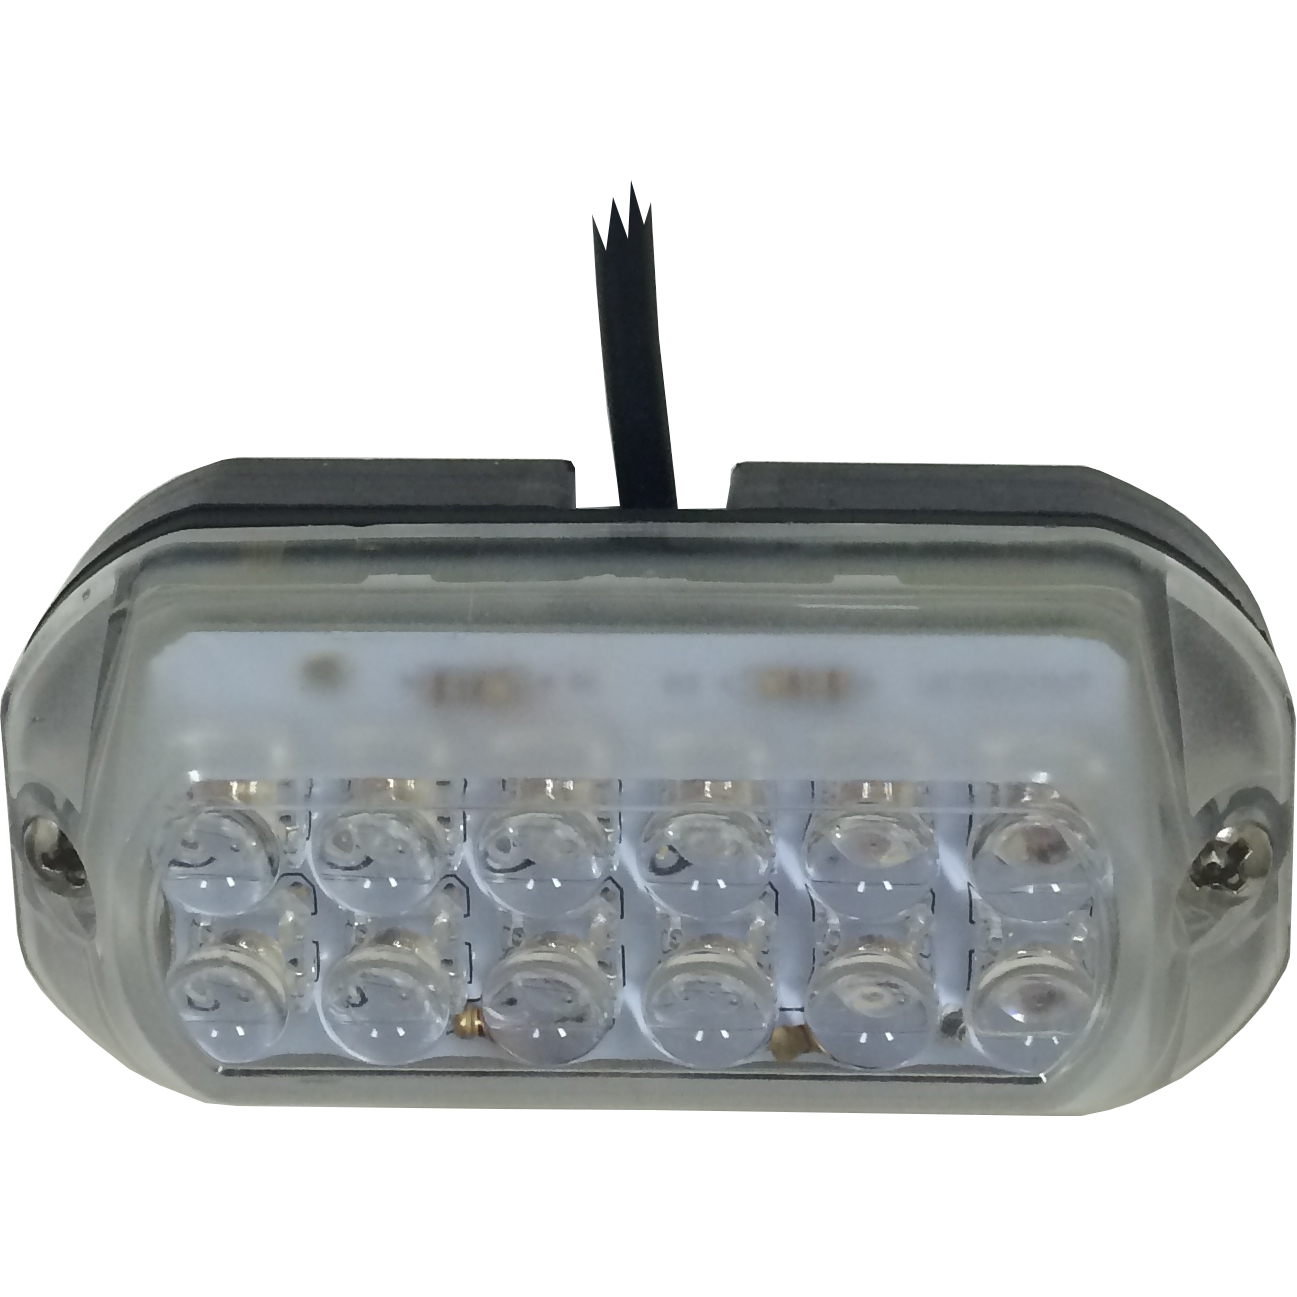 LED UNDERWATER LIGHT 12V 400 LUMEN 2.3 WATT WHITE